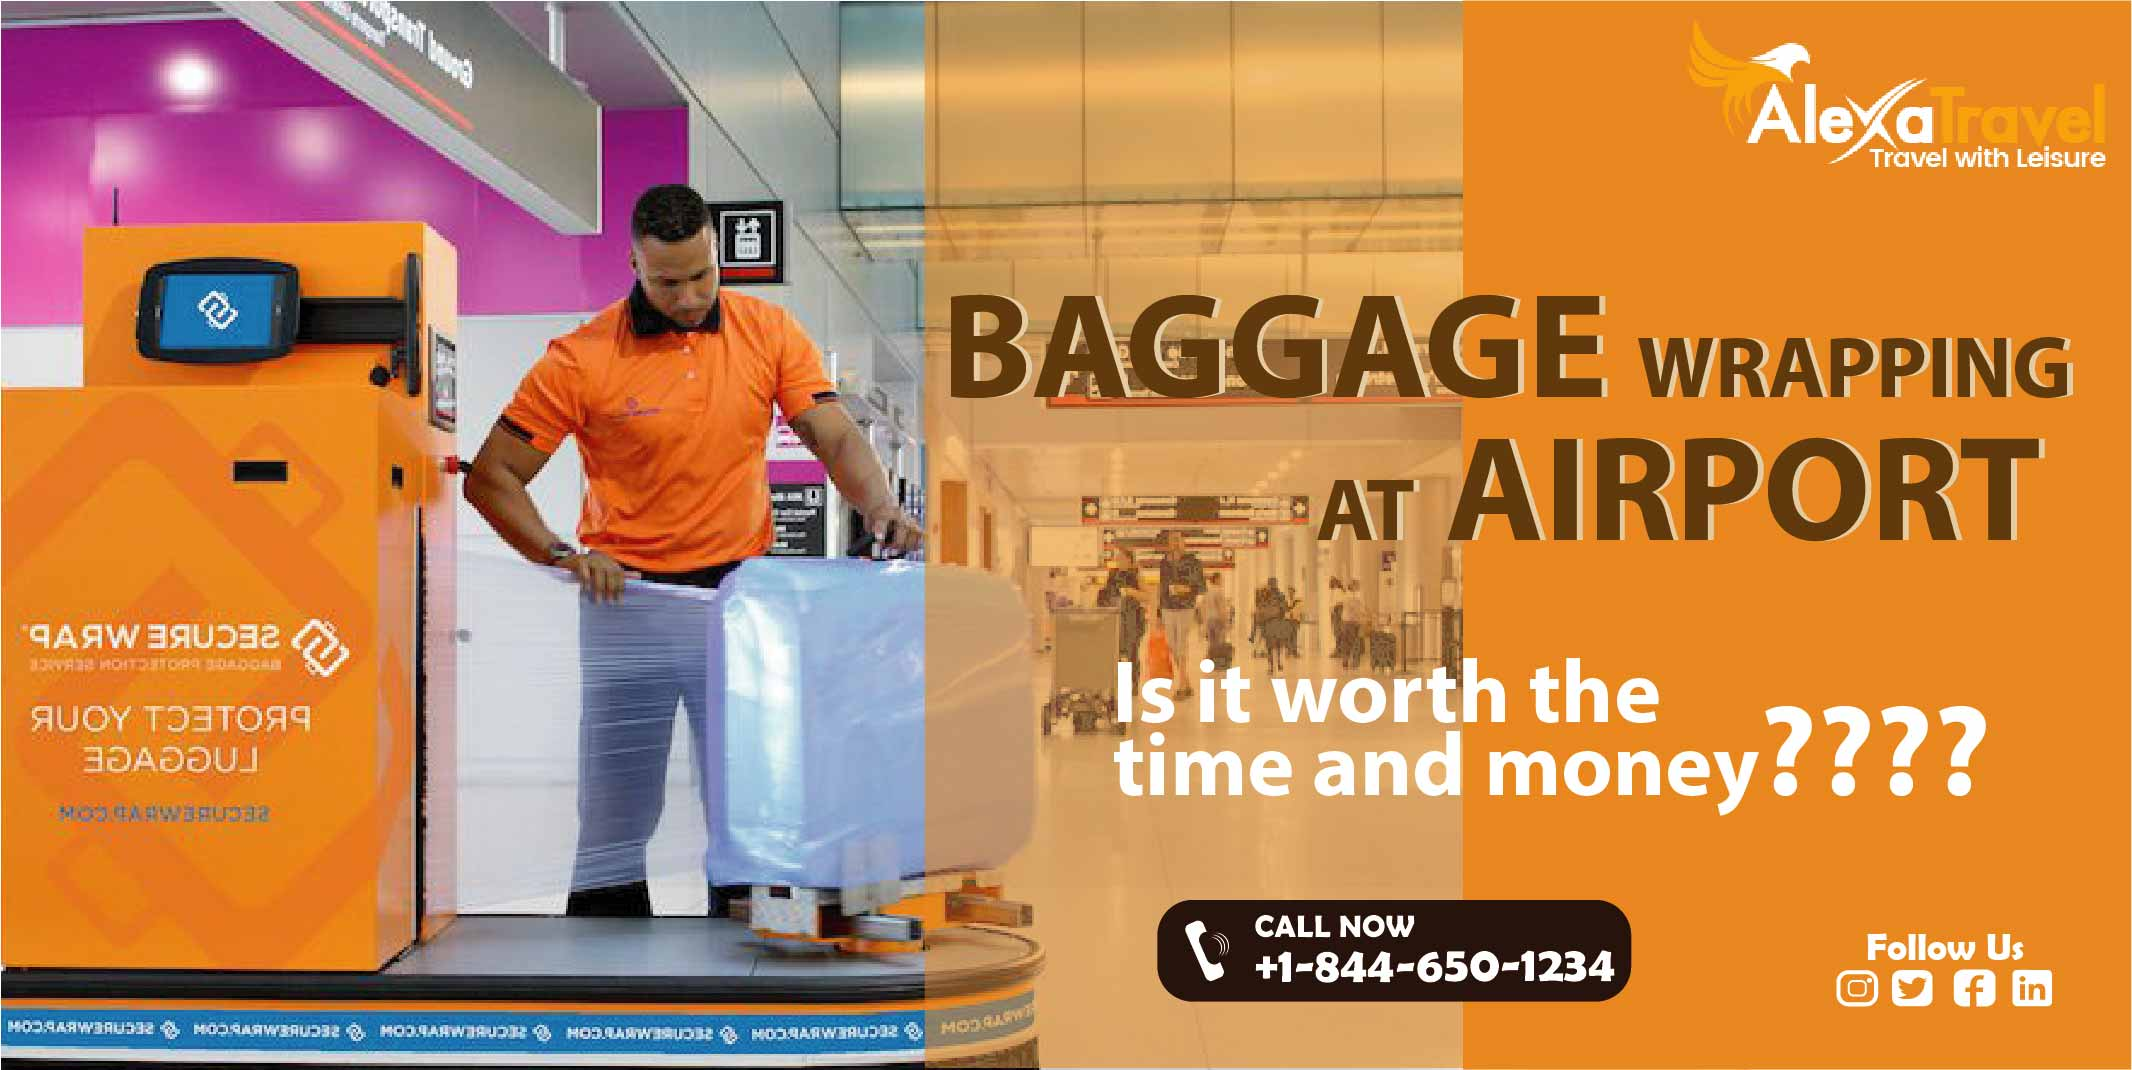 Baggage Wrapping at airport